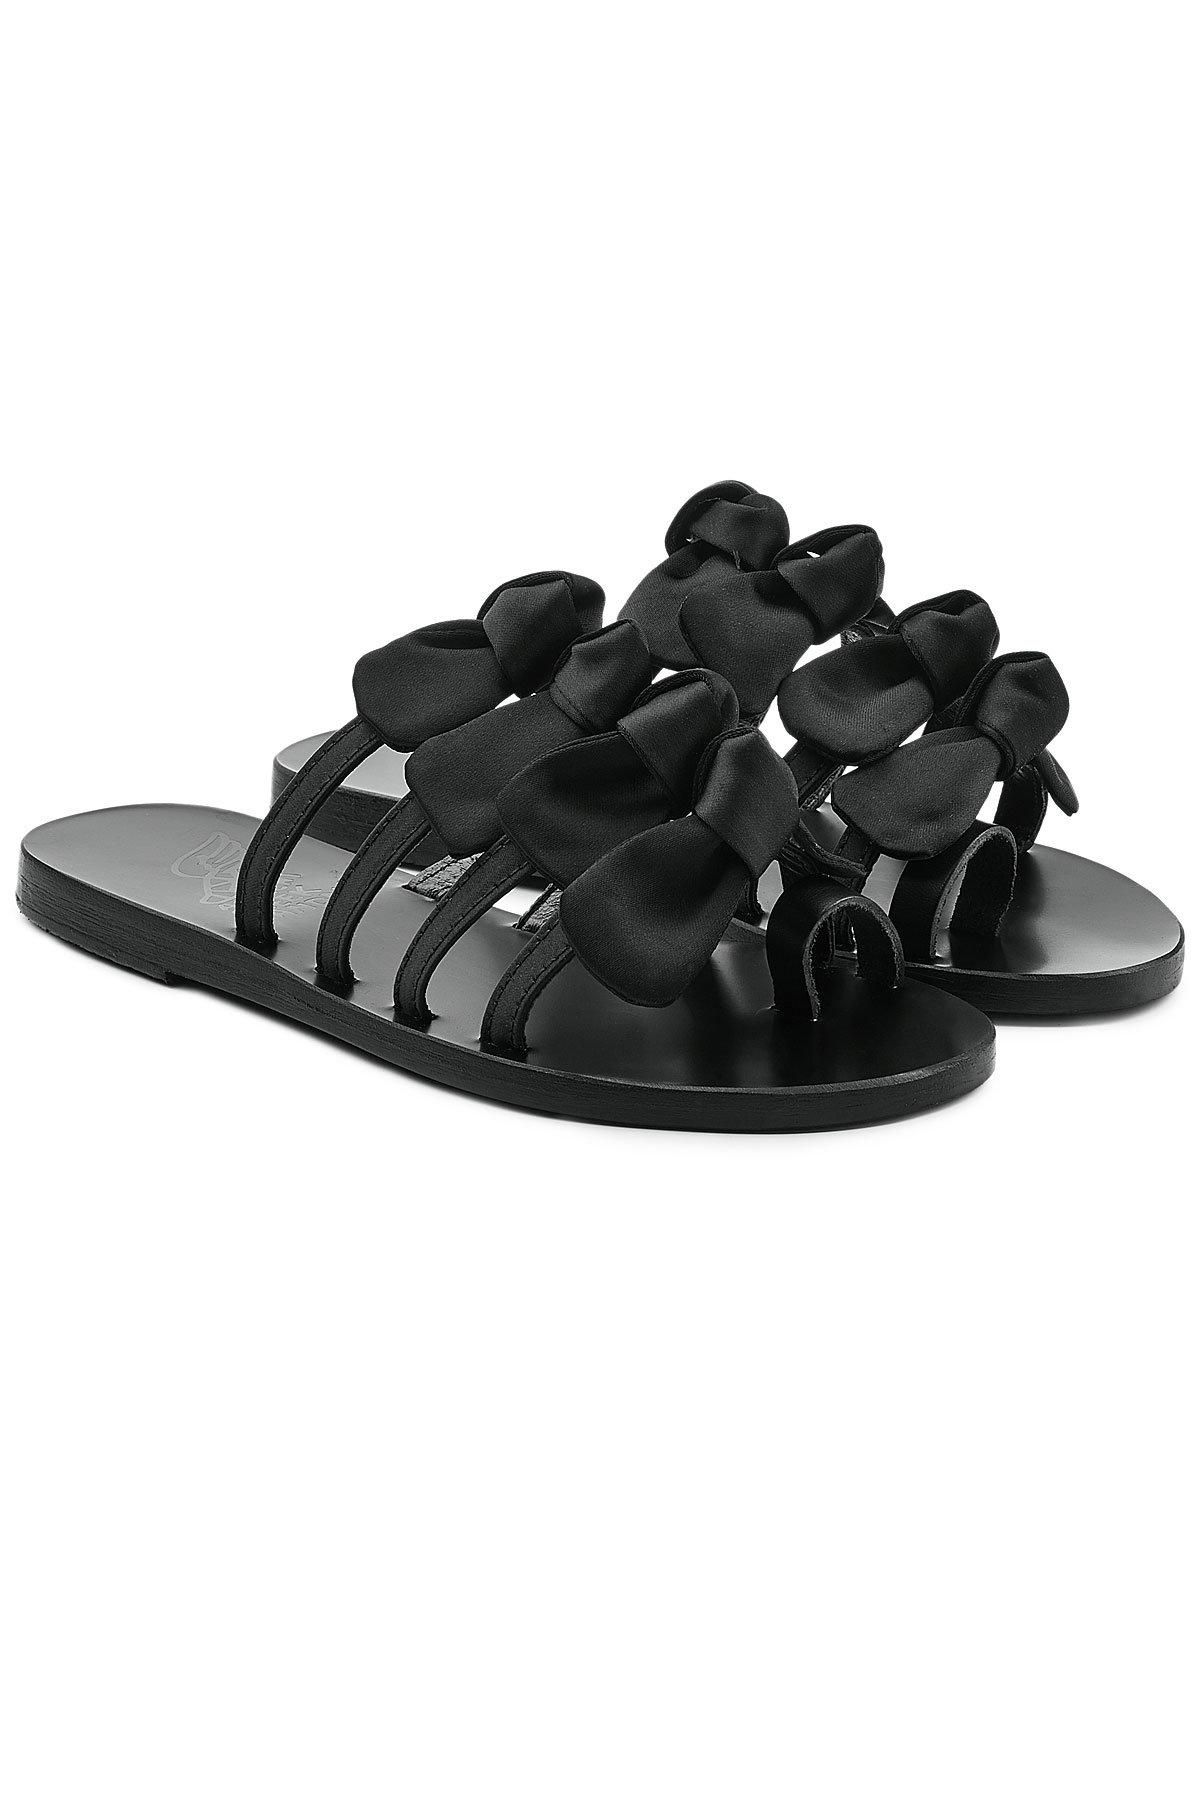 Hara sandals - Black Ancient Greek Sandals Mejr7r